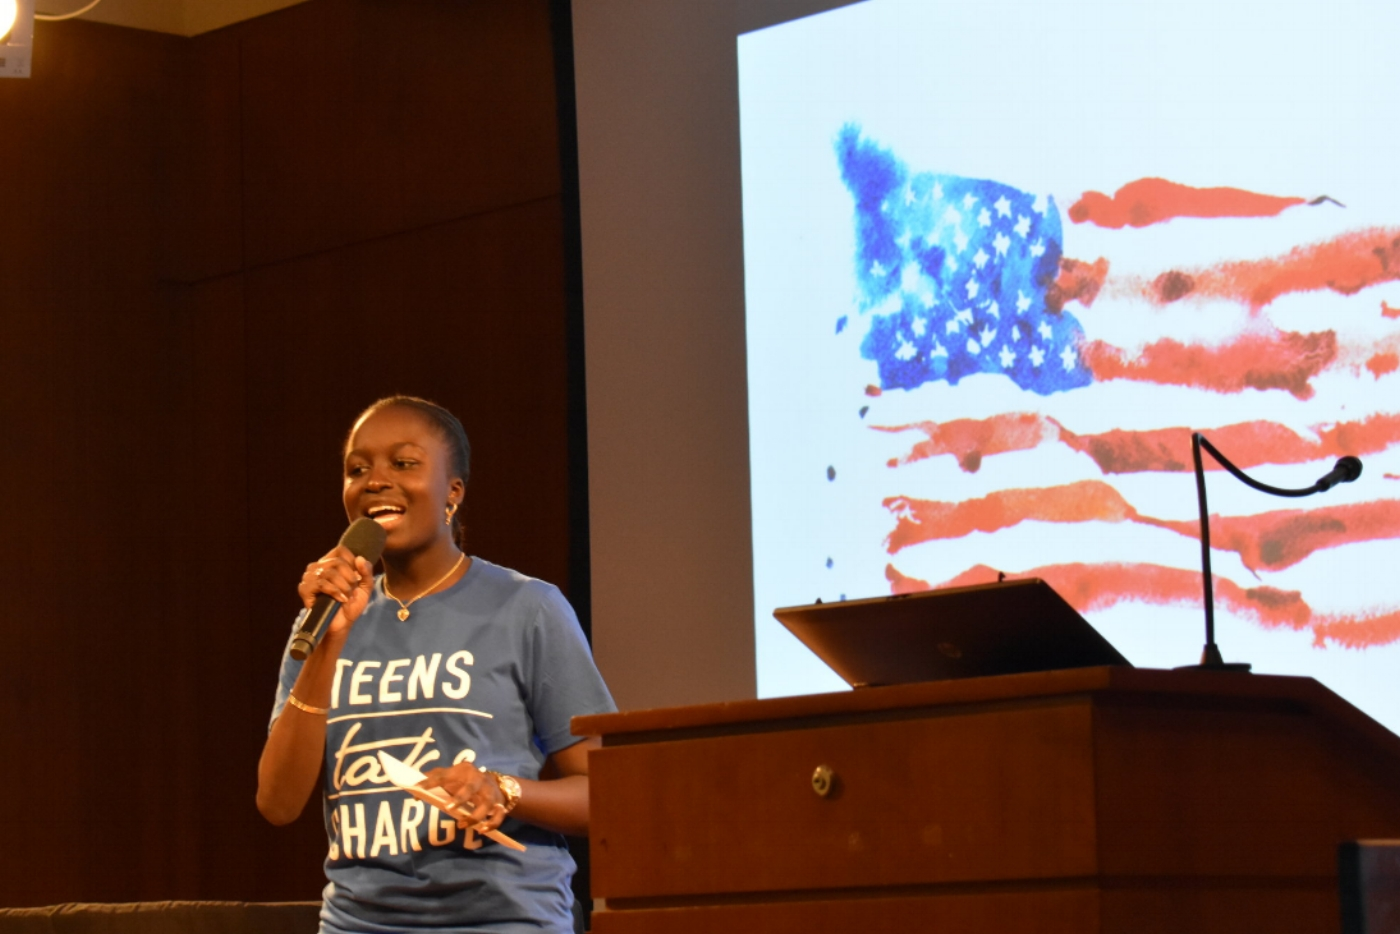 Event emcee Sokhnadiarra Ndiaye kicked off the event by reflecting on the false promises of the American Dream.  Photo by Julian Giordano